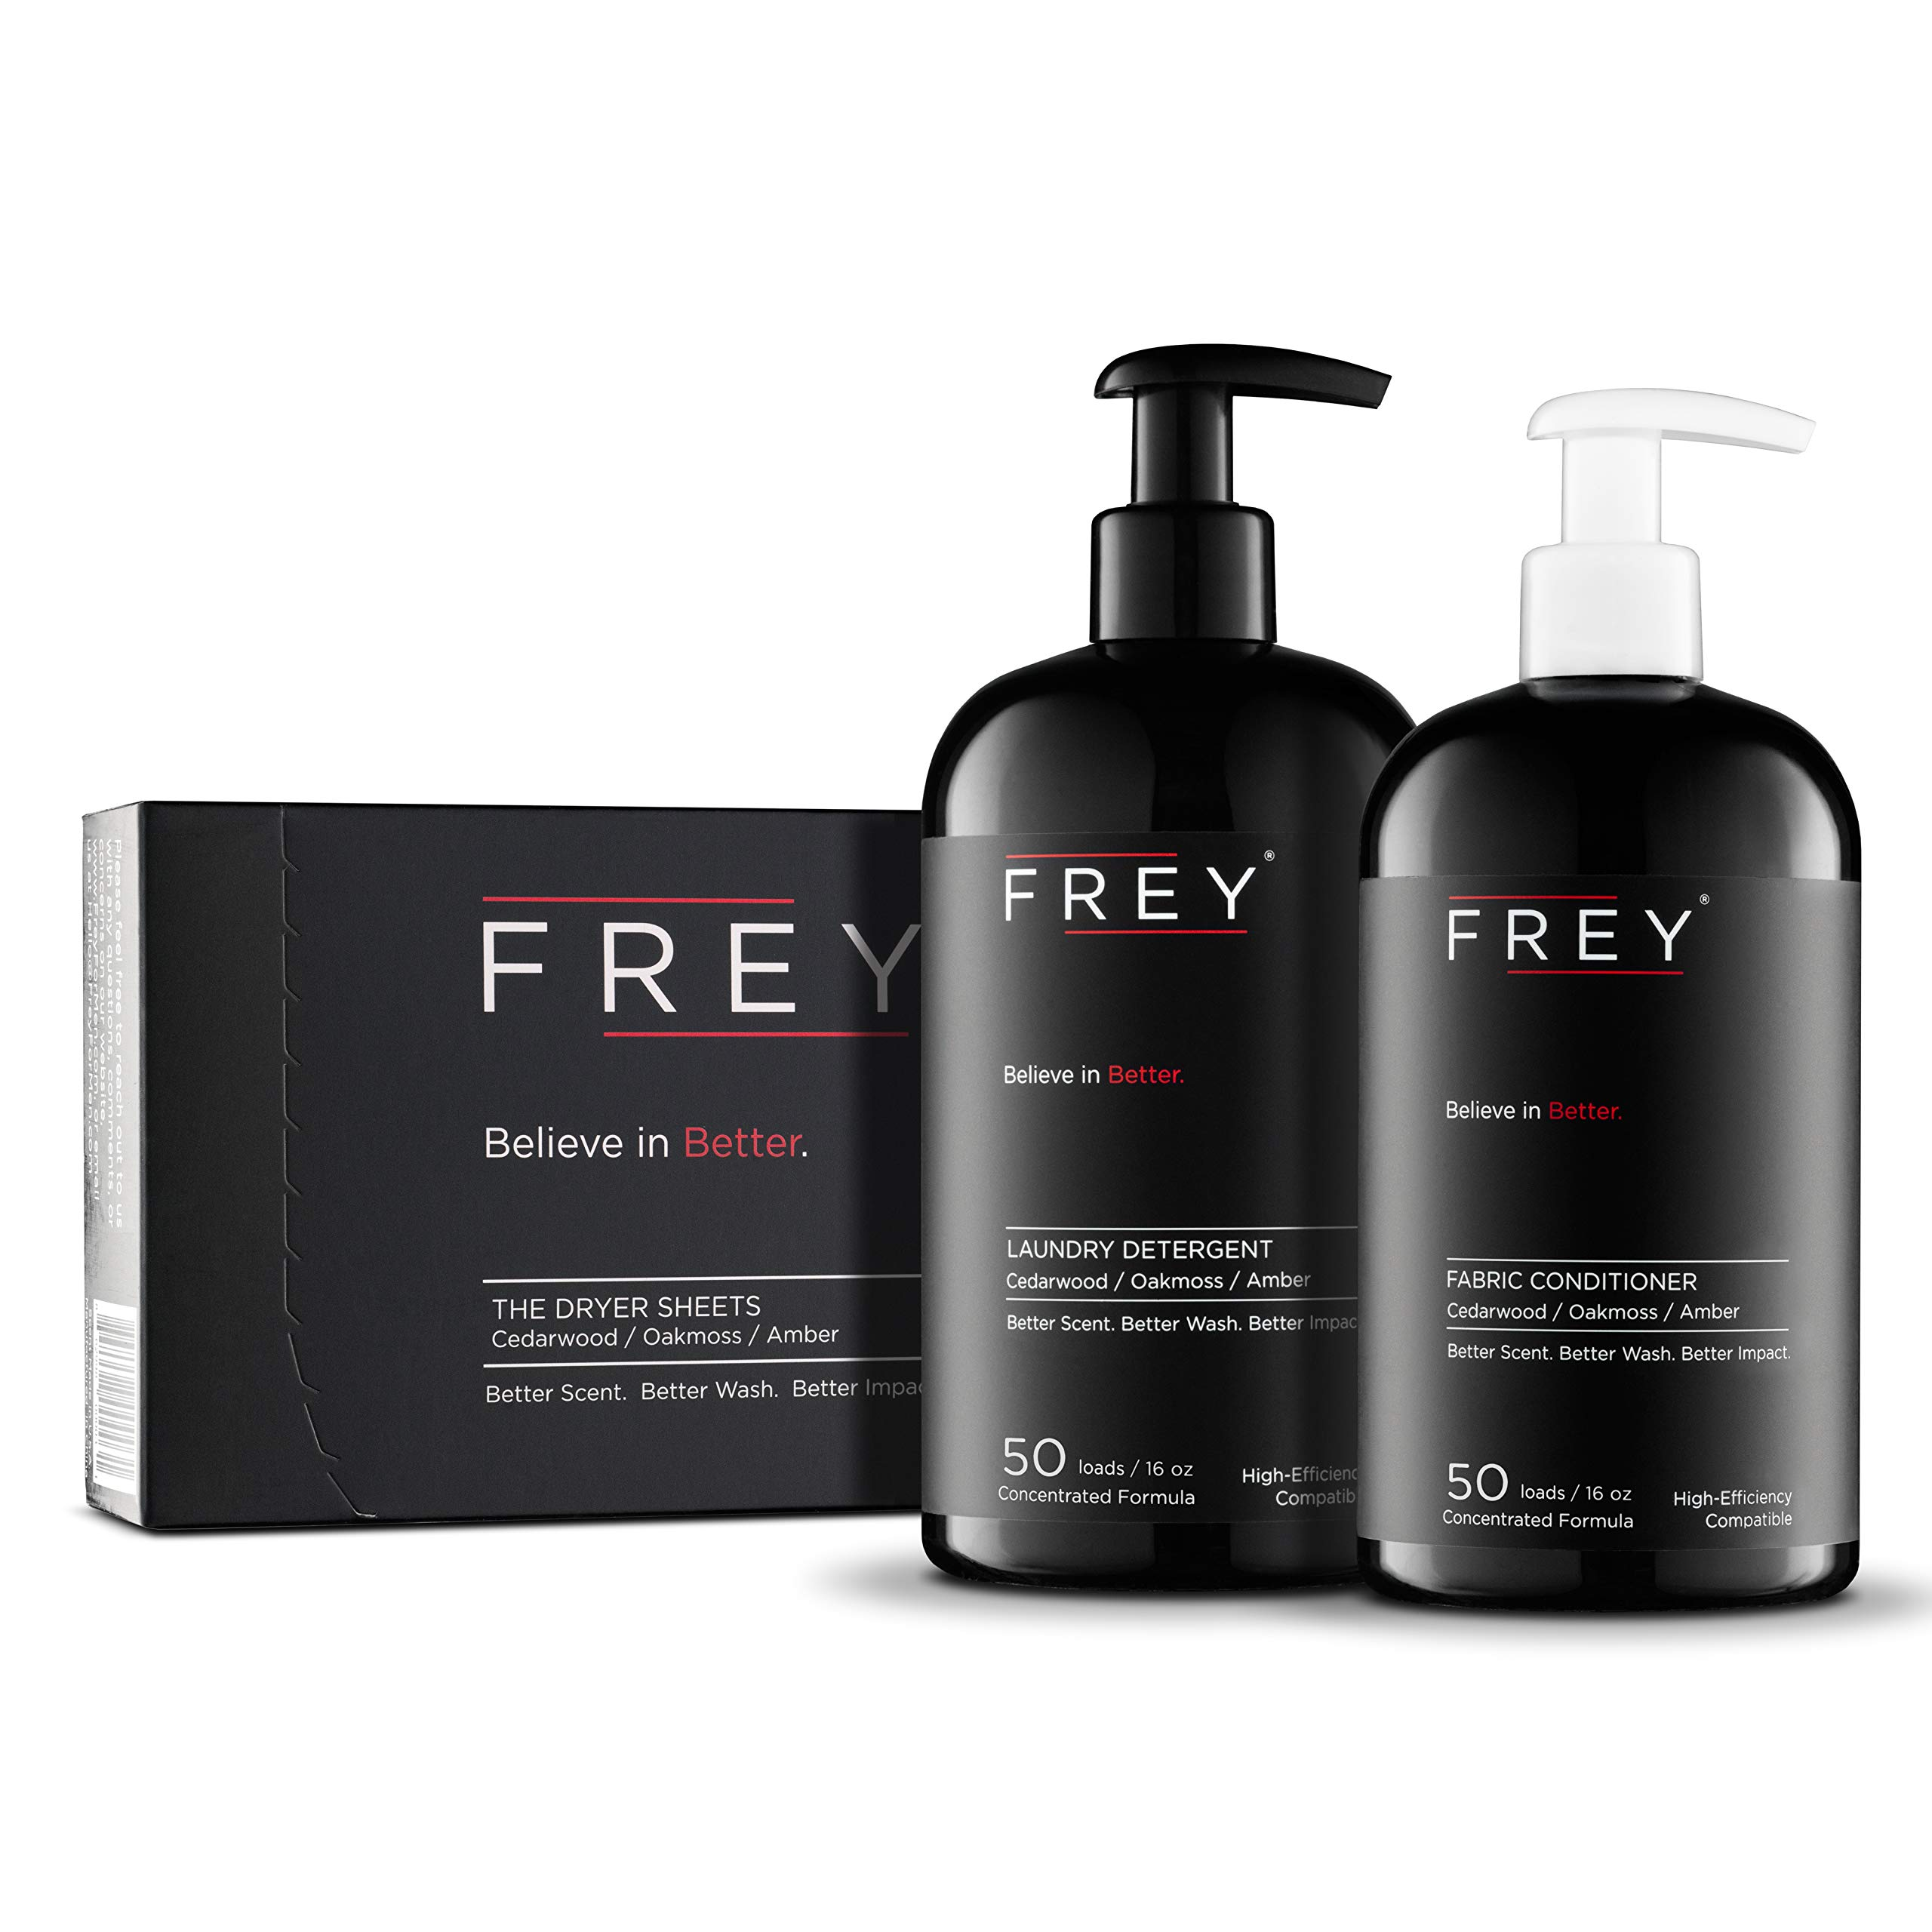 FREY Concentrated Clothes Detergent, Fabric Conditioner and Fabric Sheets Complete Package